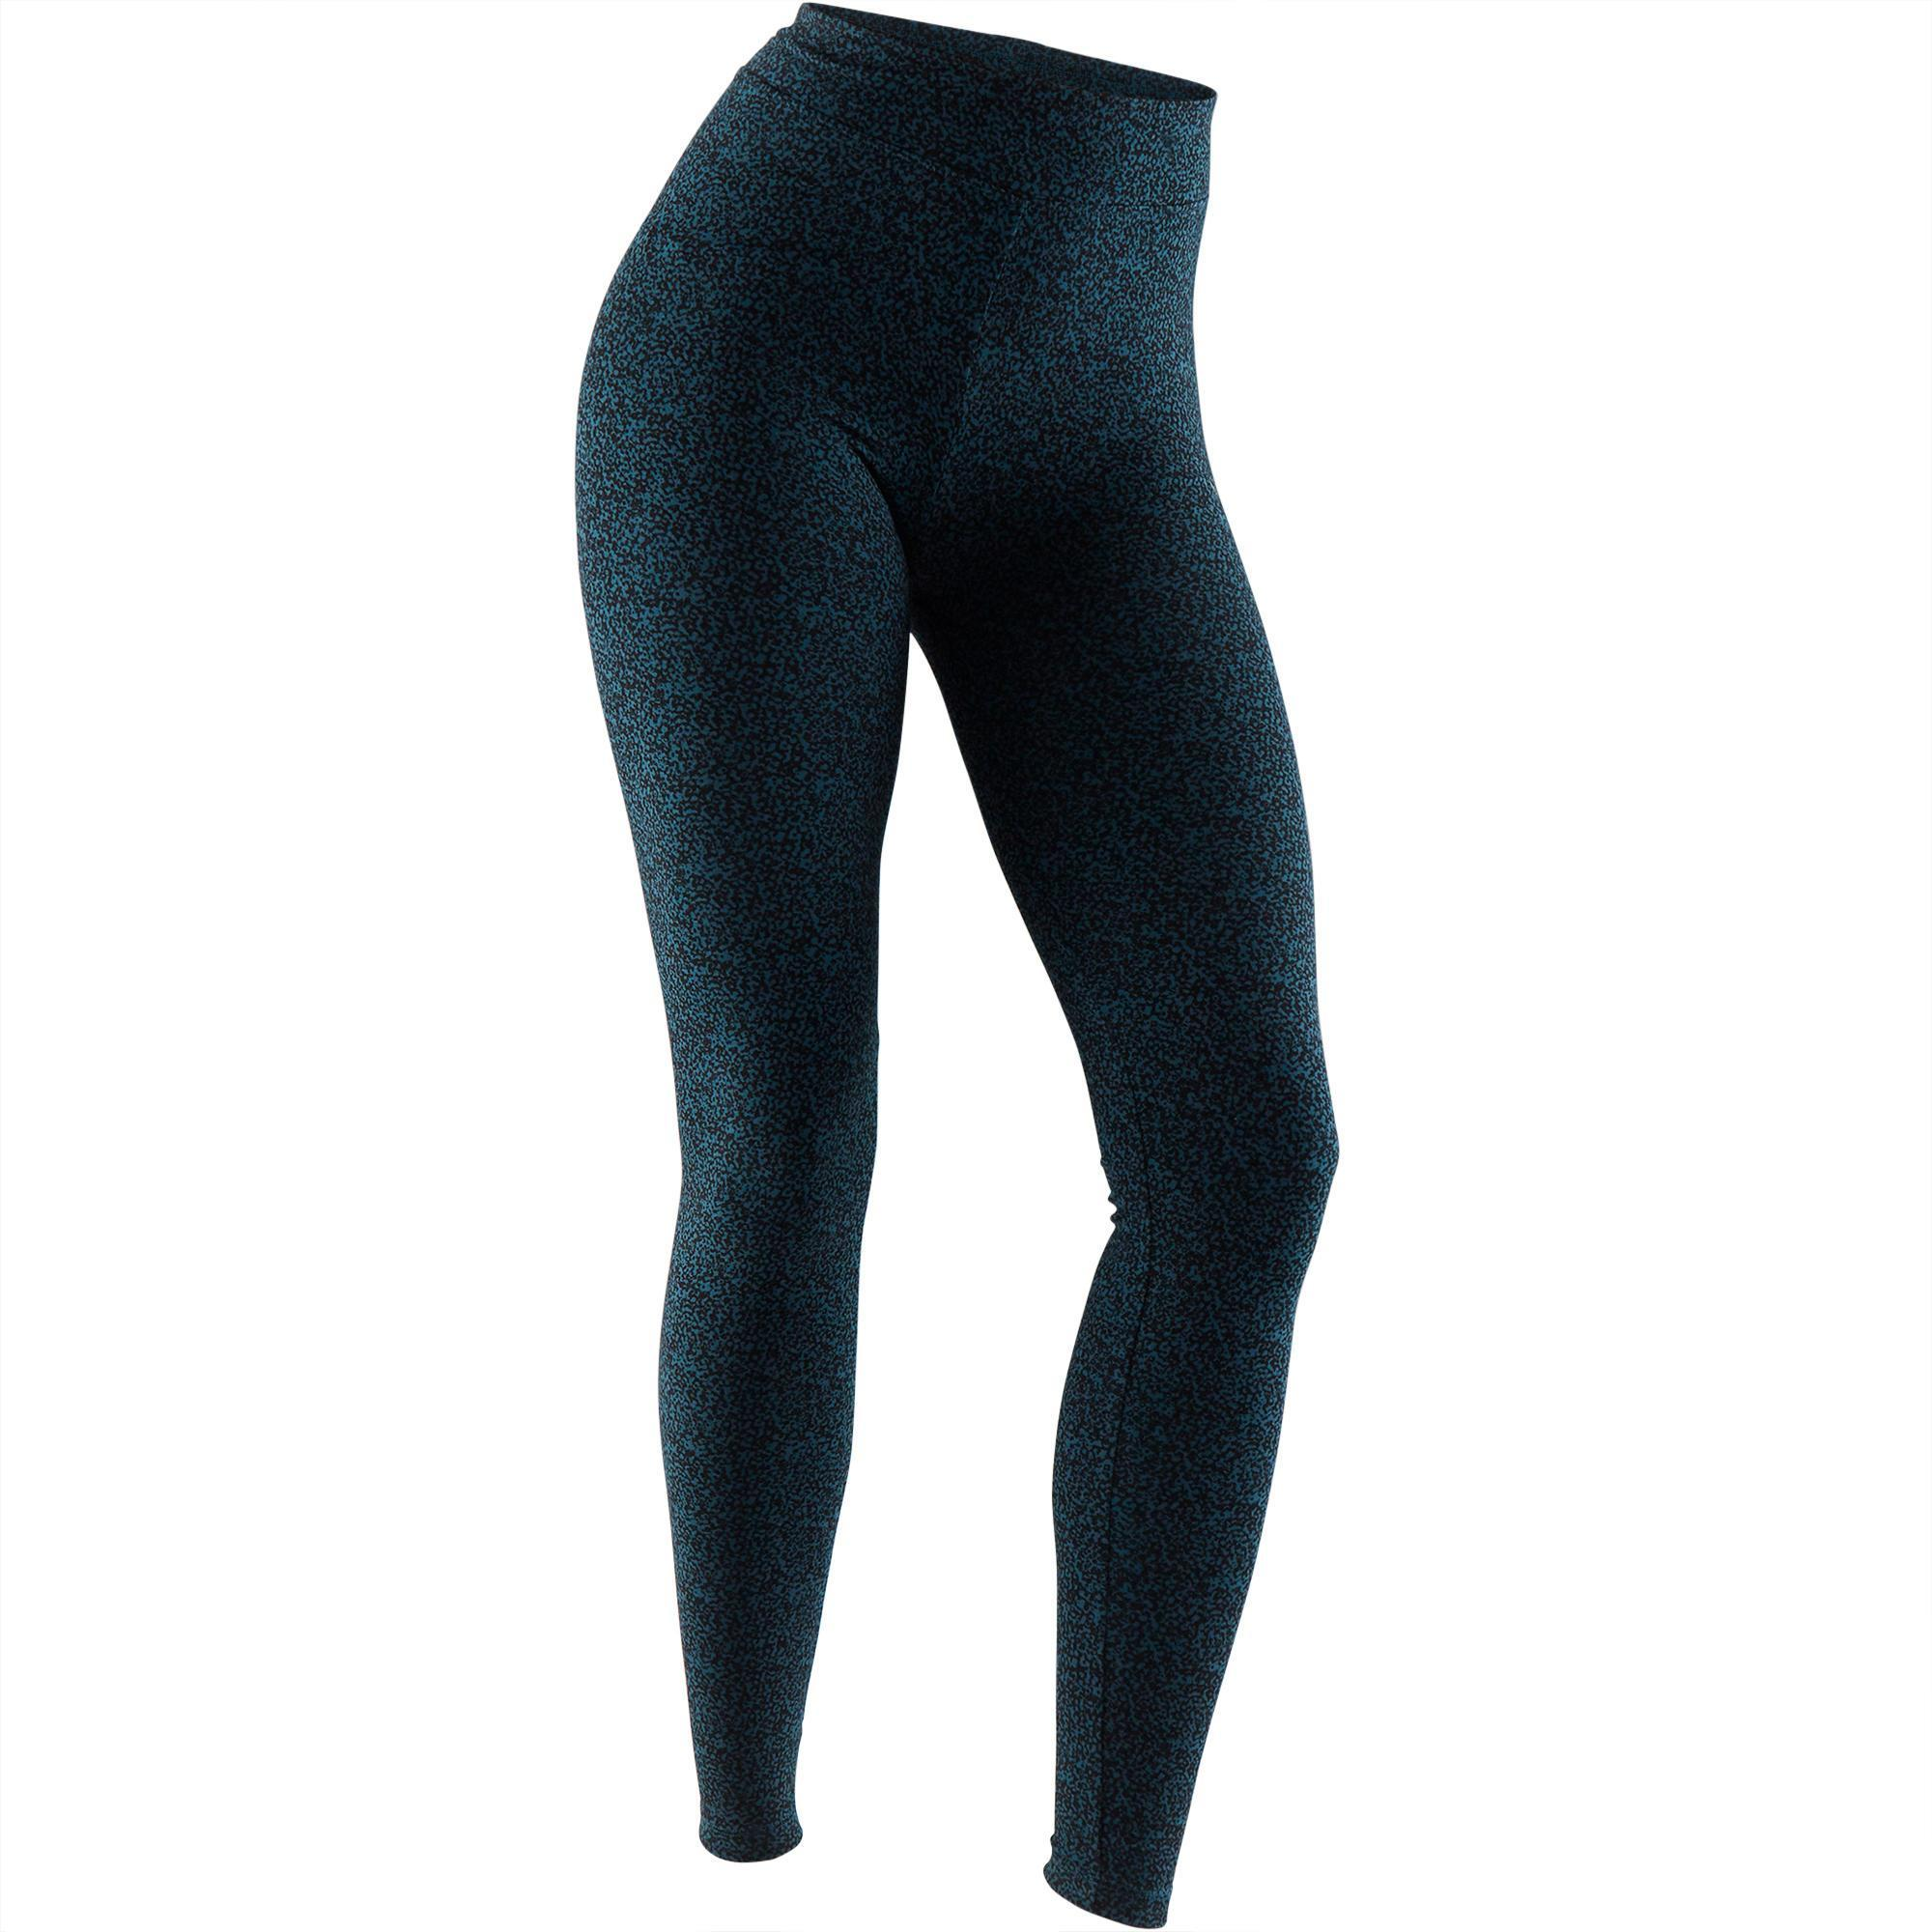 Domyos Legging Fit+ 500 slim fit pilates en lichte gym dames turquoise AOP